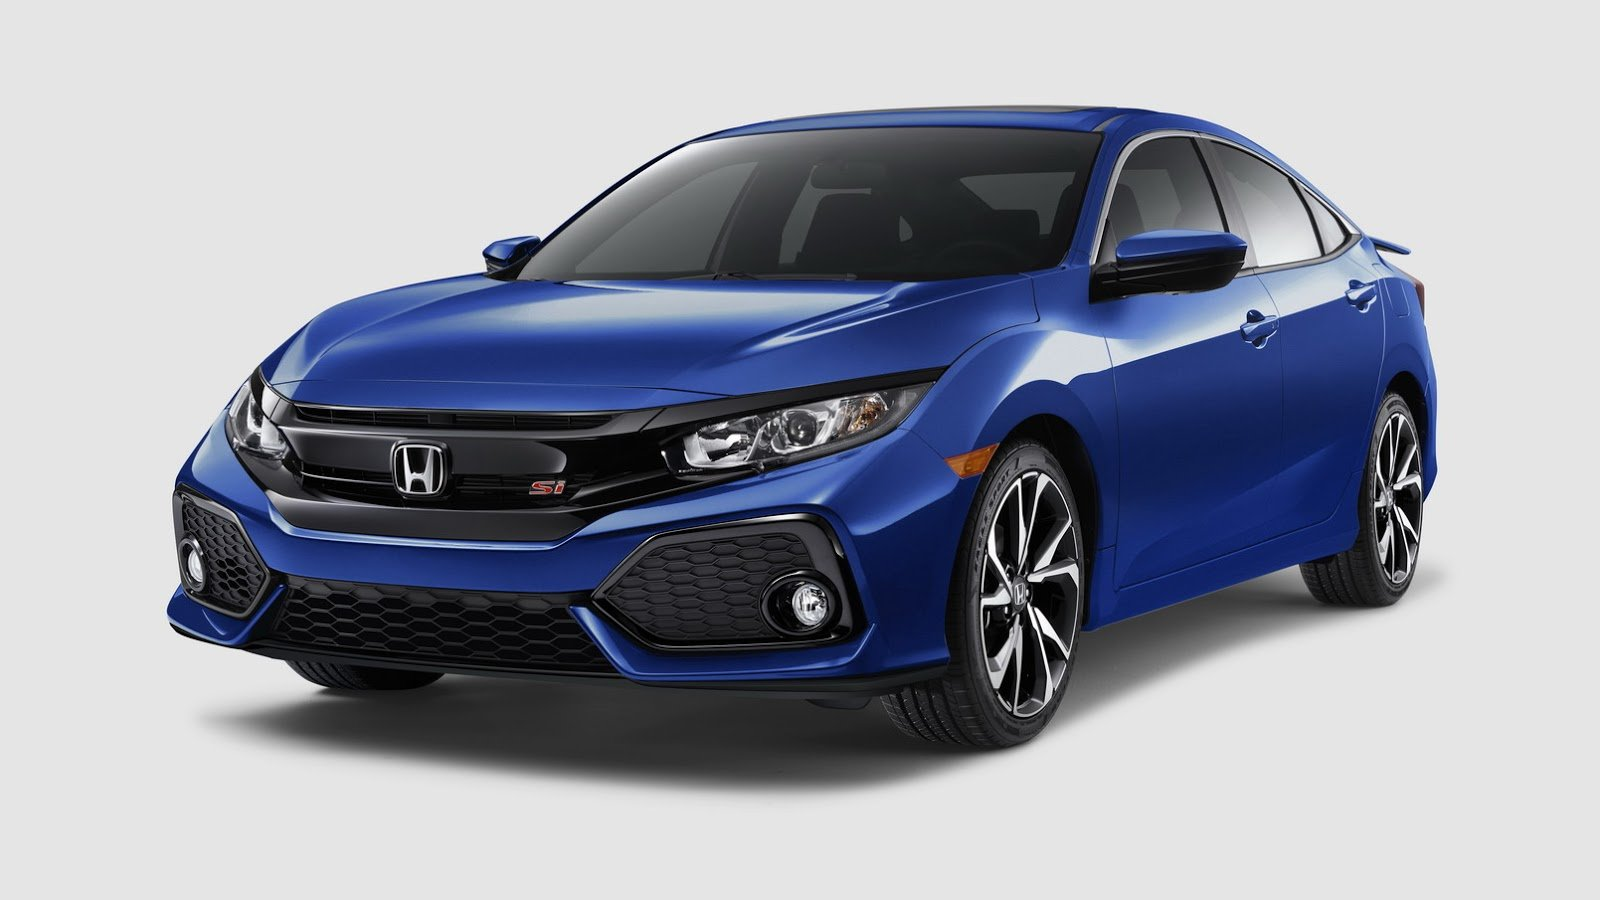 2017 Honda Civic SI Sedan